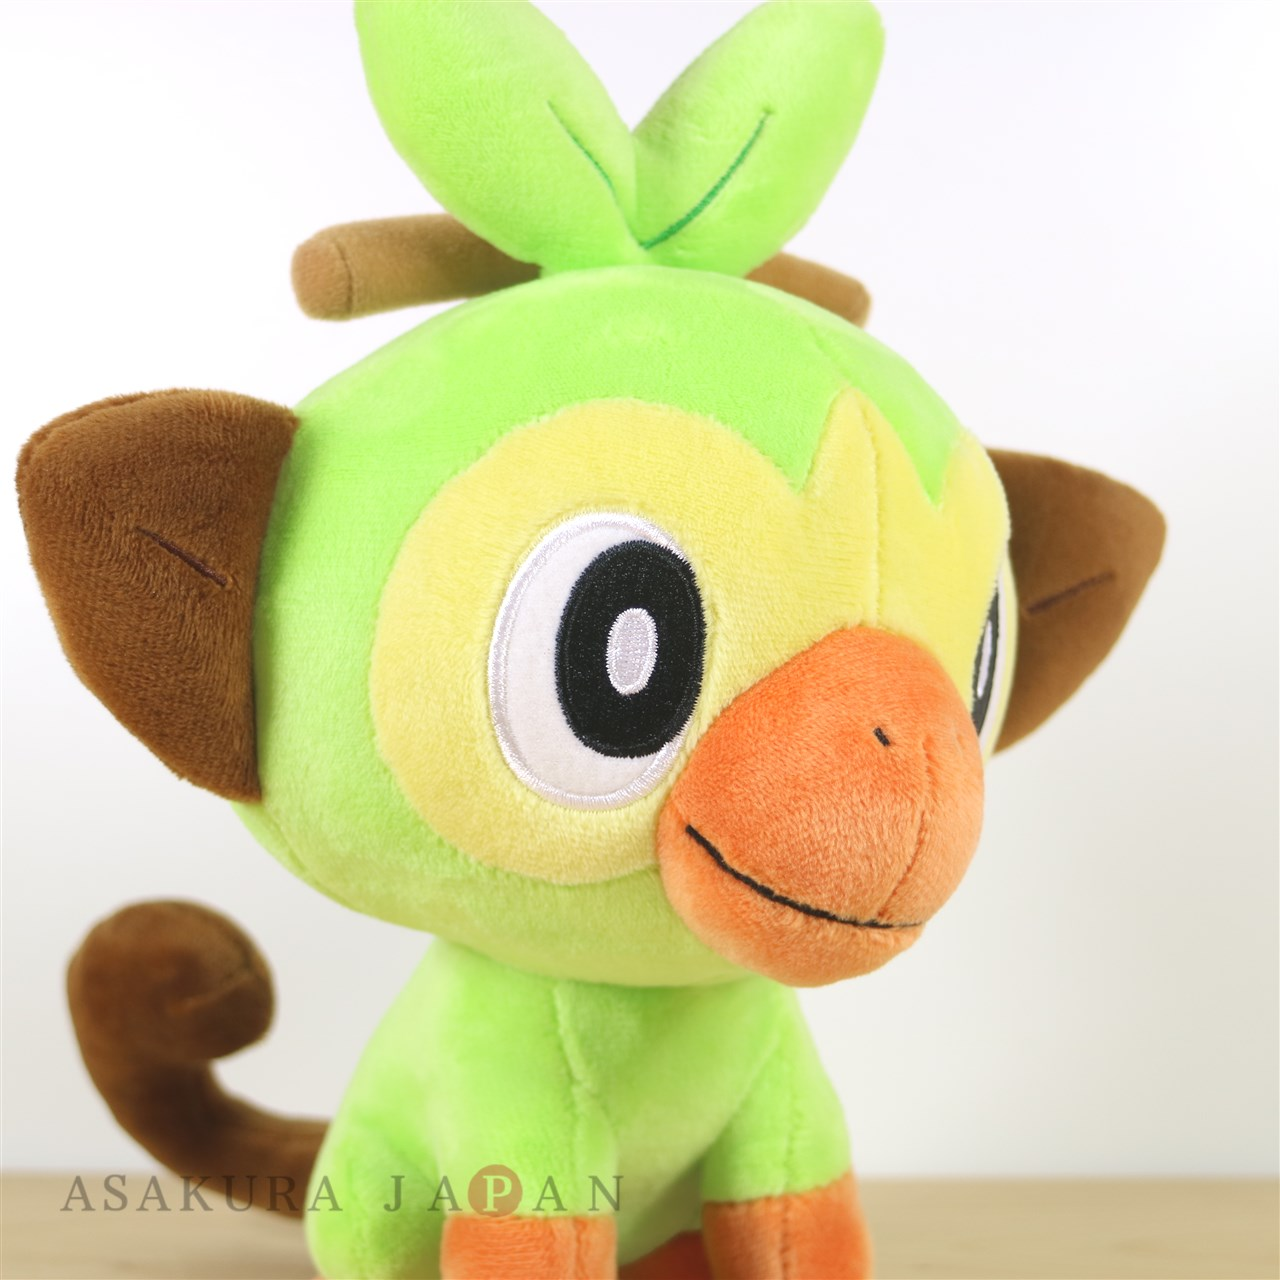 Pokemon Center 2019 Plush Doll Grookey Scorbunny Sobble 3 Set Minky plush made from finest materials available at shockingly low prices. pokemon center 2019 plush doll grookey scorbunny sobble 3 set